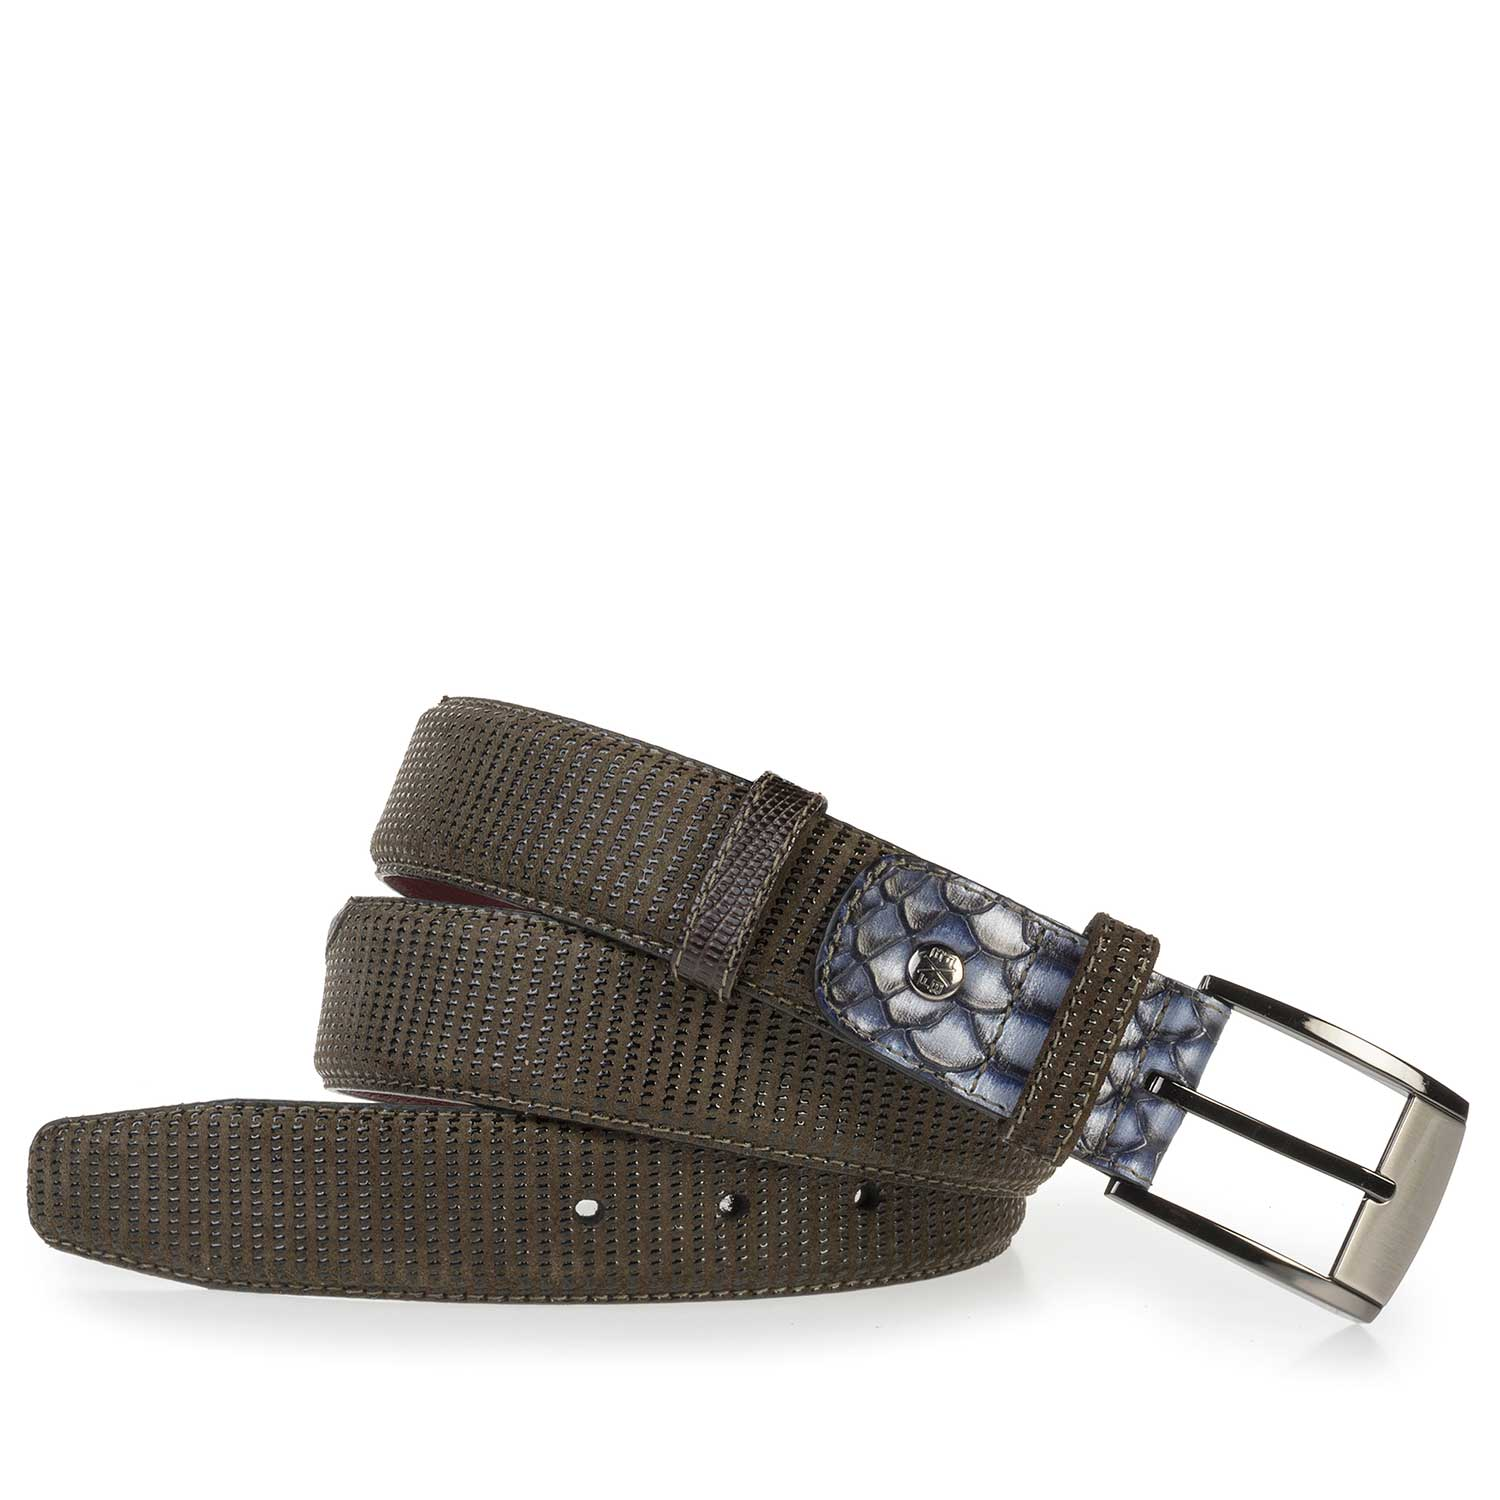 75176/02 - Olive green suede leather belt